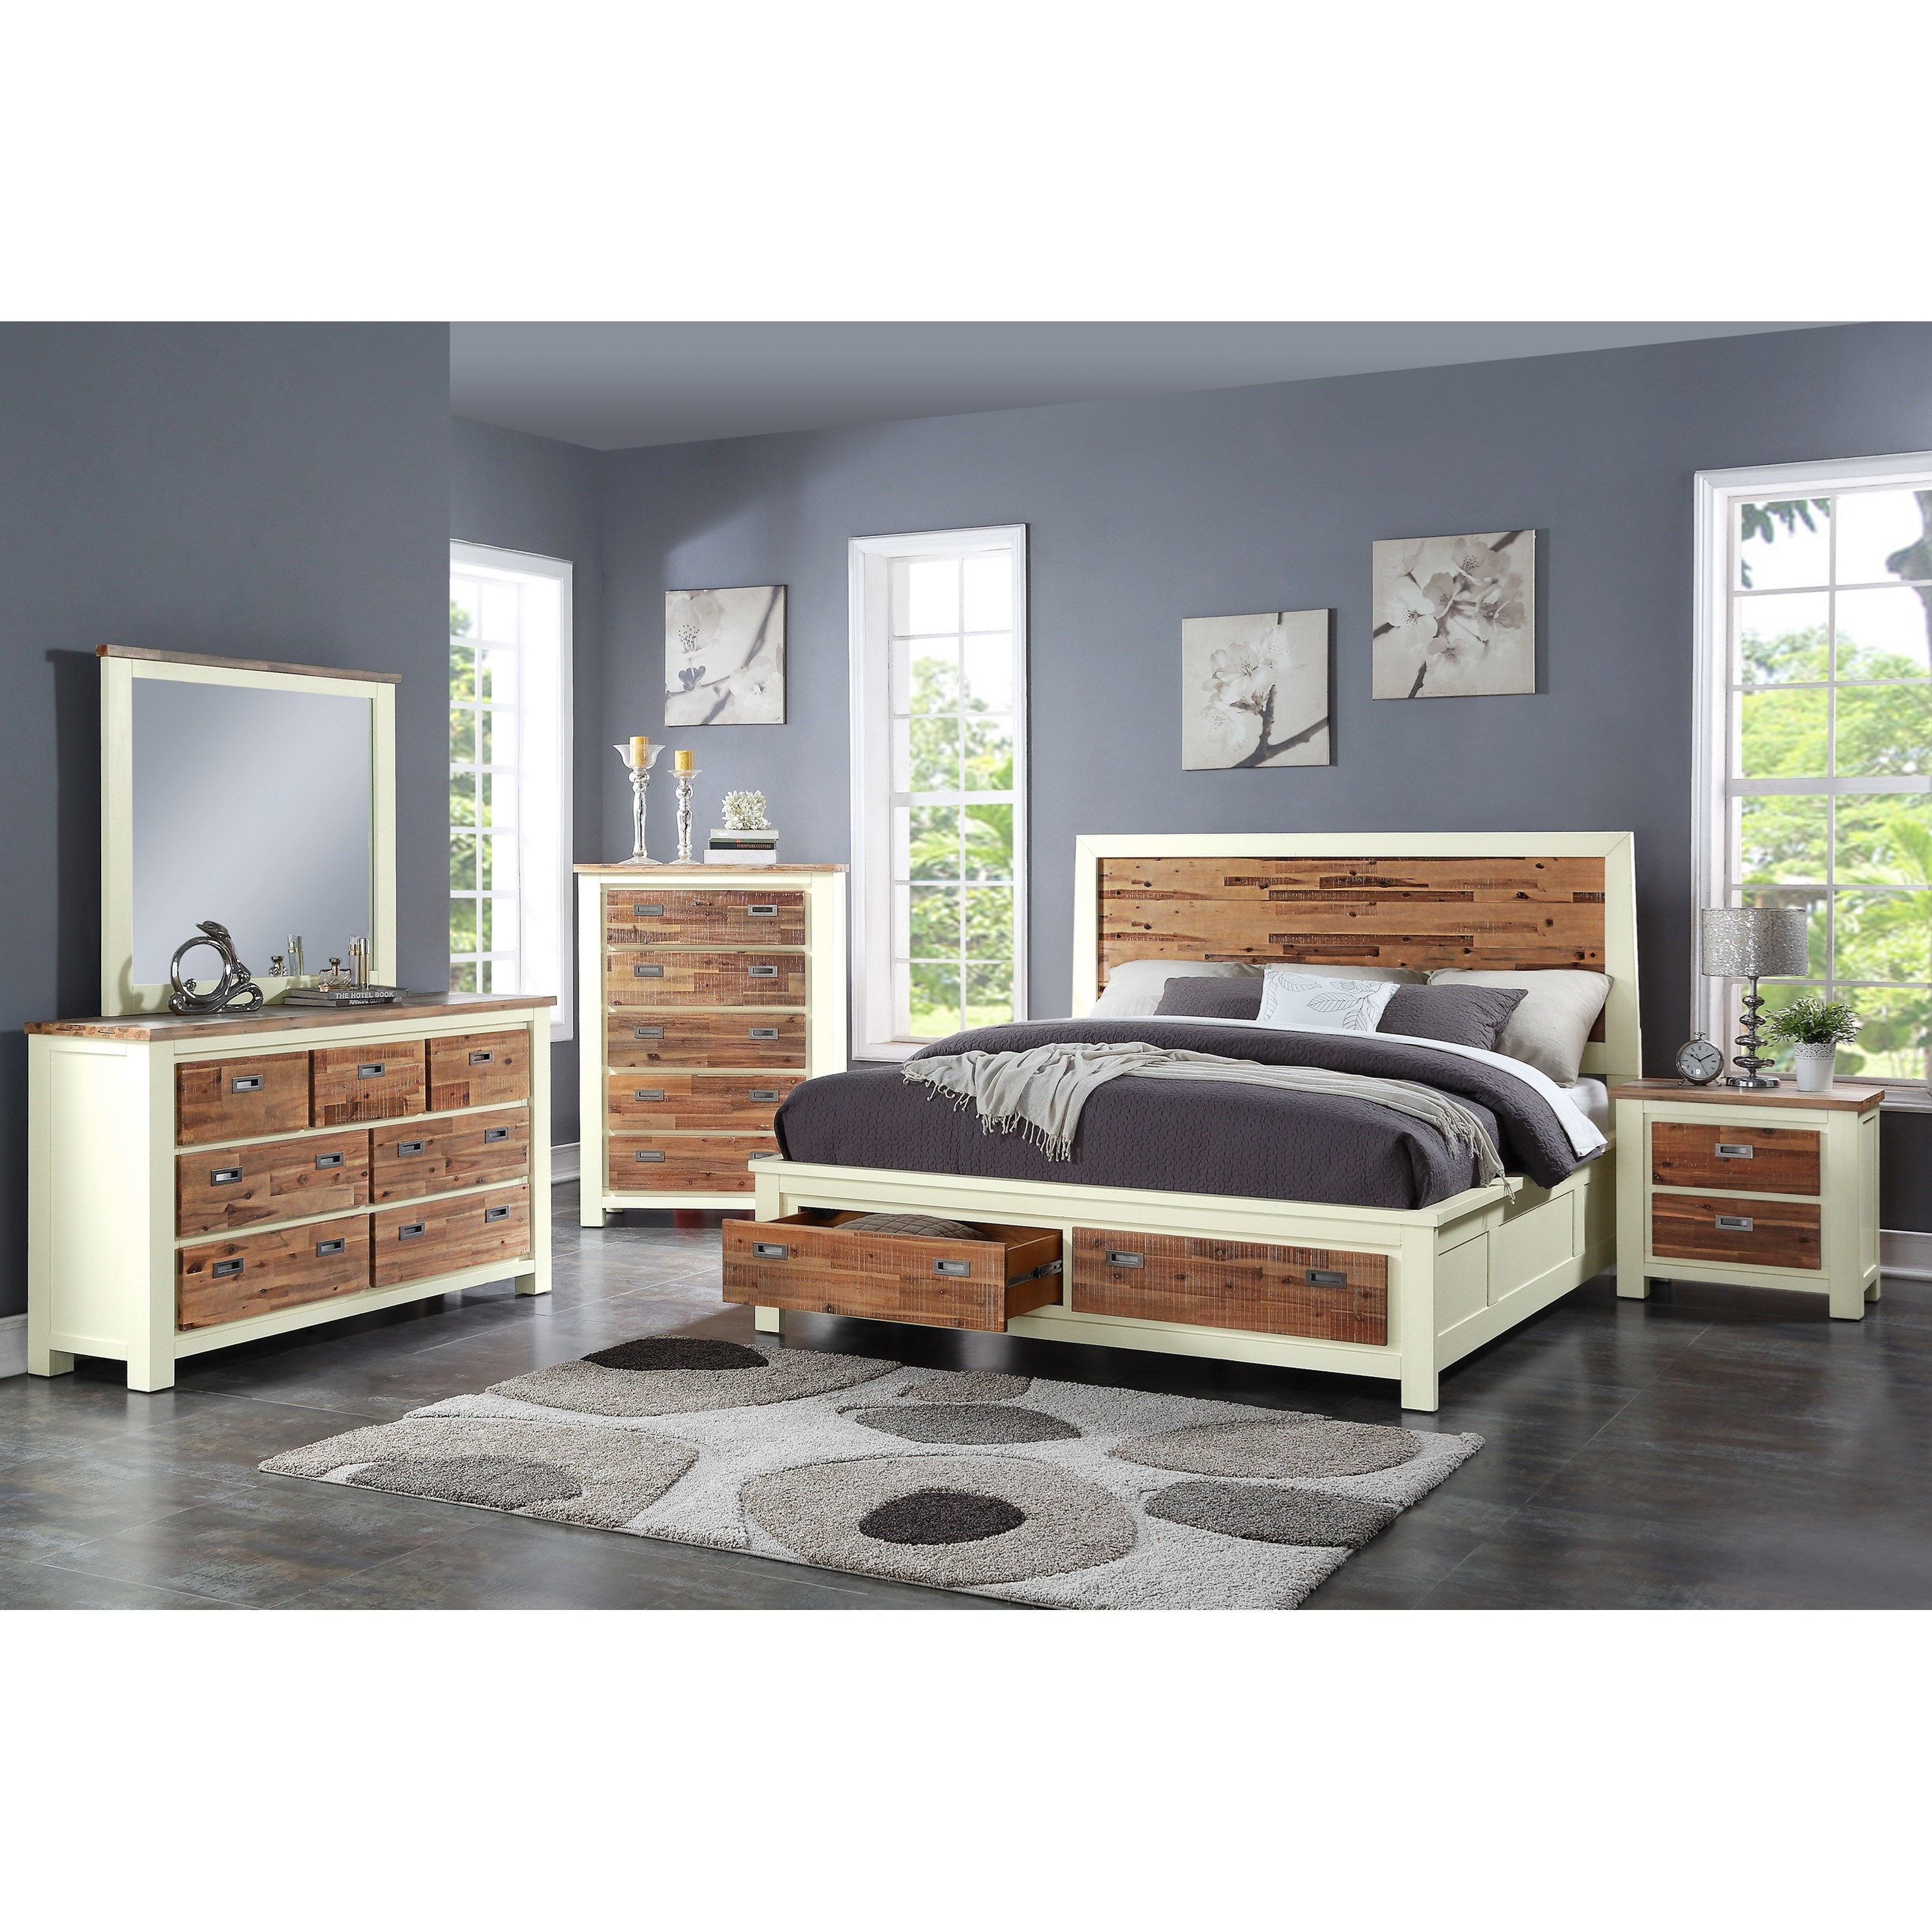 Crown Mark Buckley Queen Bedroom Group - Item Number: B1200 Q Bedroom Group 1